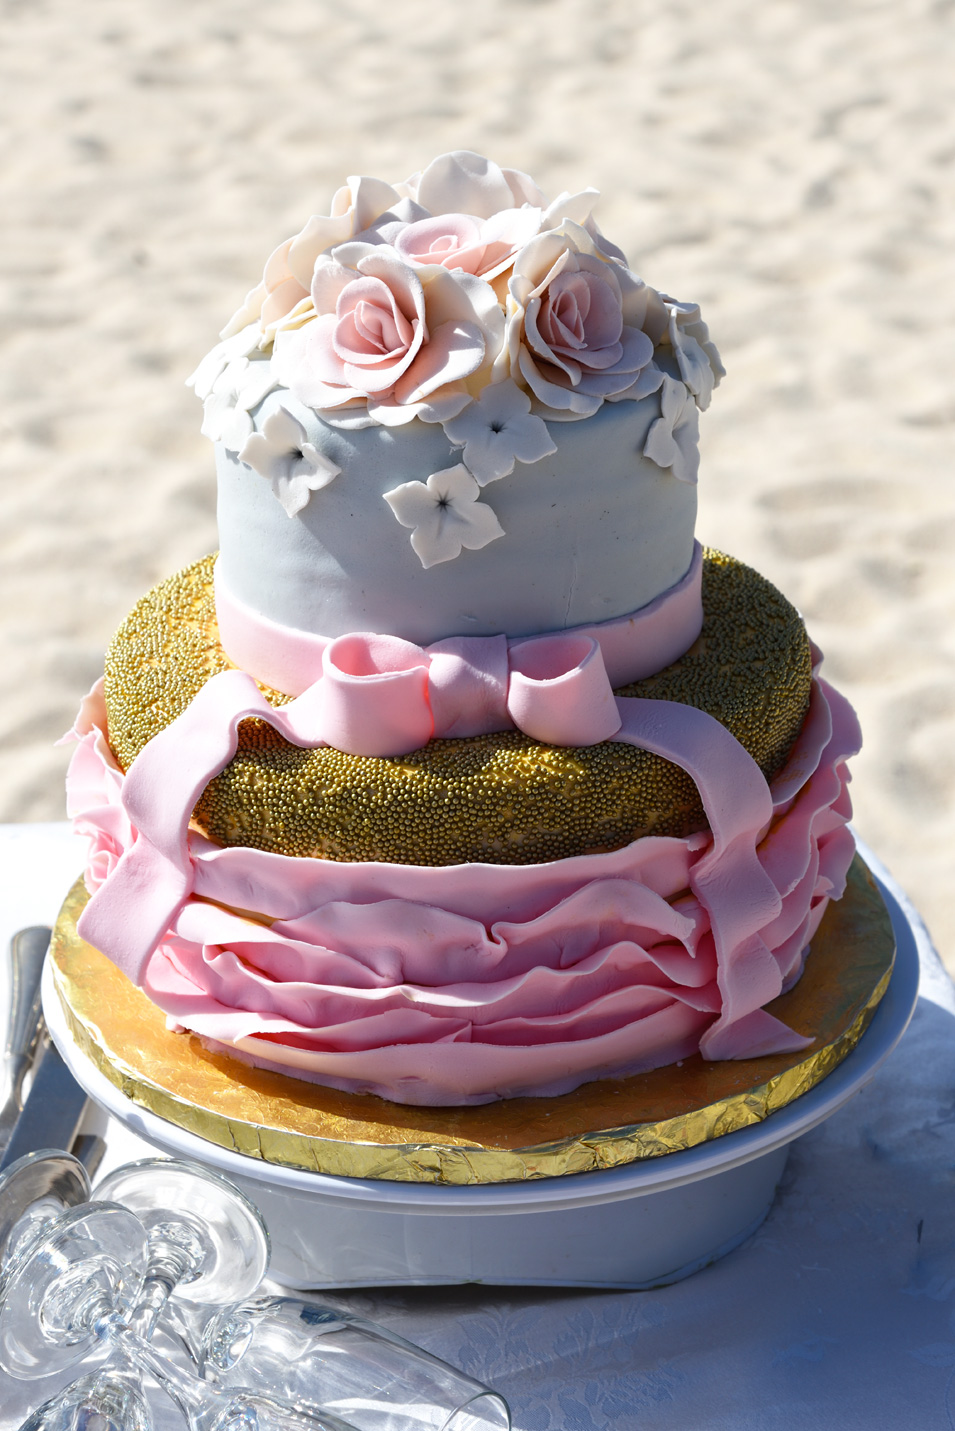 Aruba wedding cakes DWA